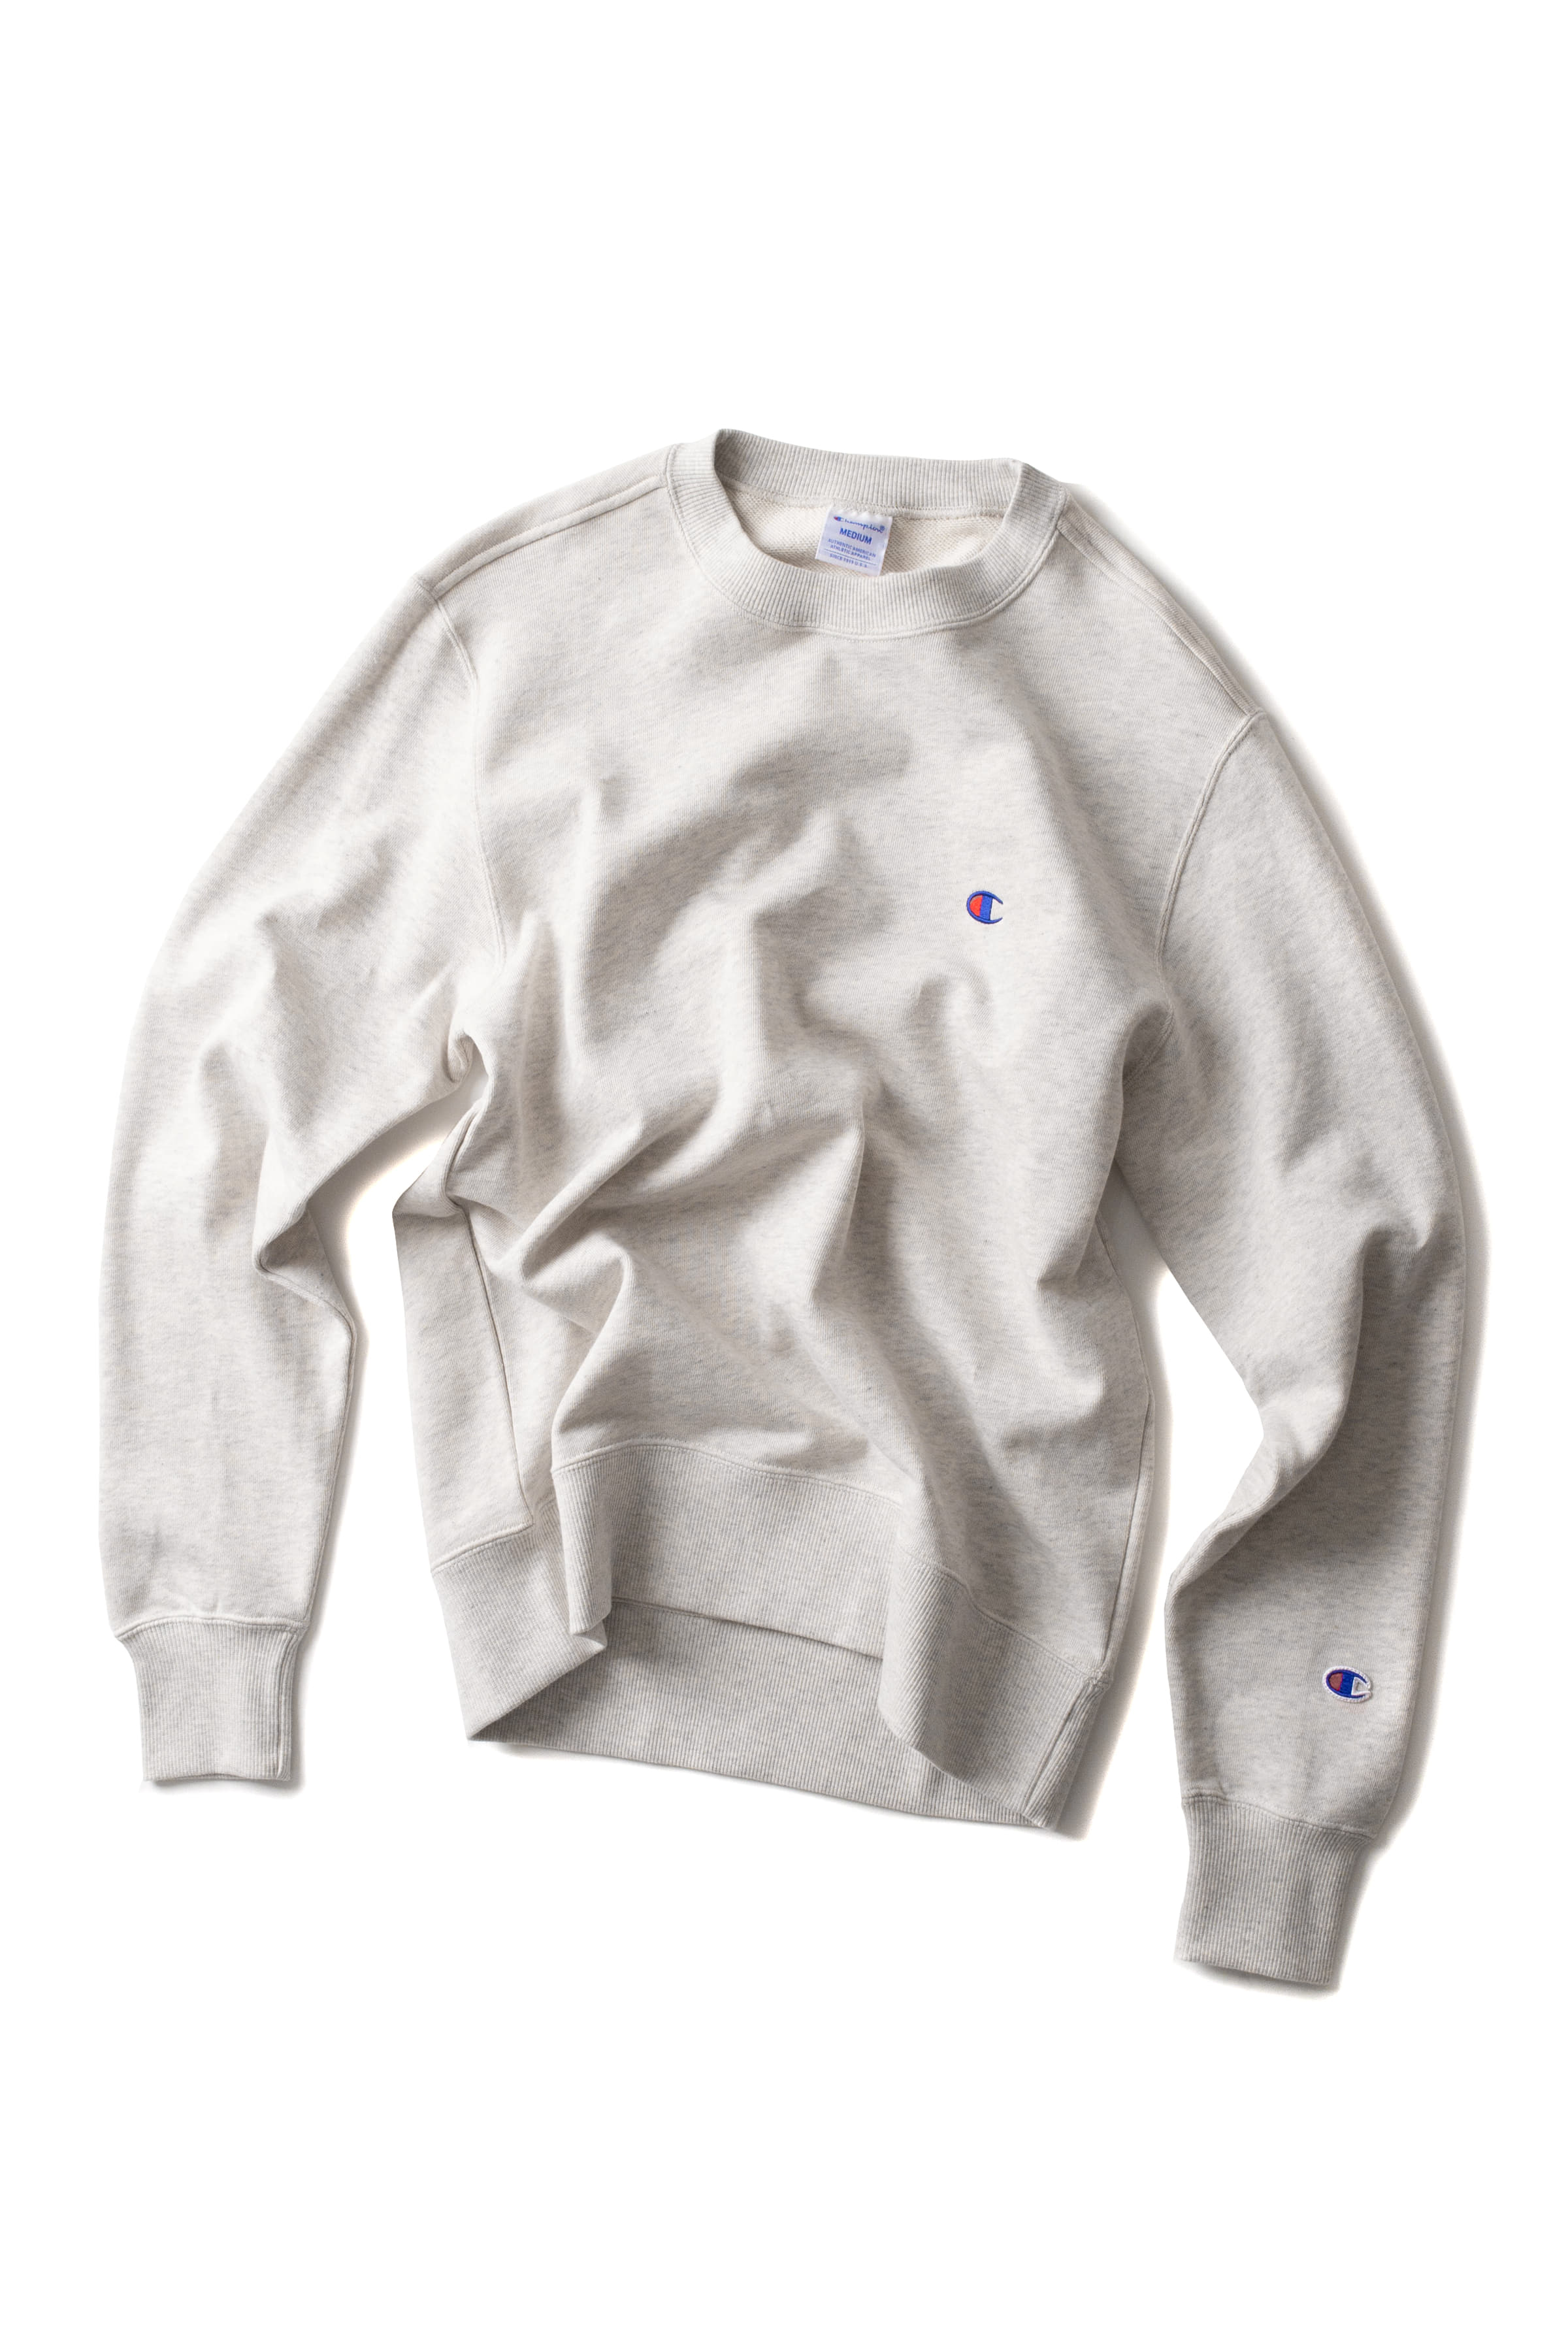 Champion : Basic Crewneck Sweat Shirt (Ivory)